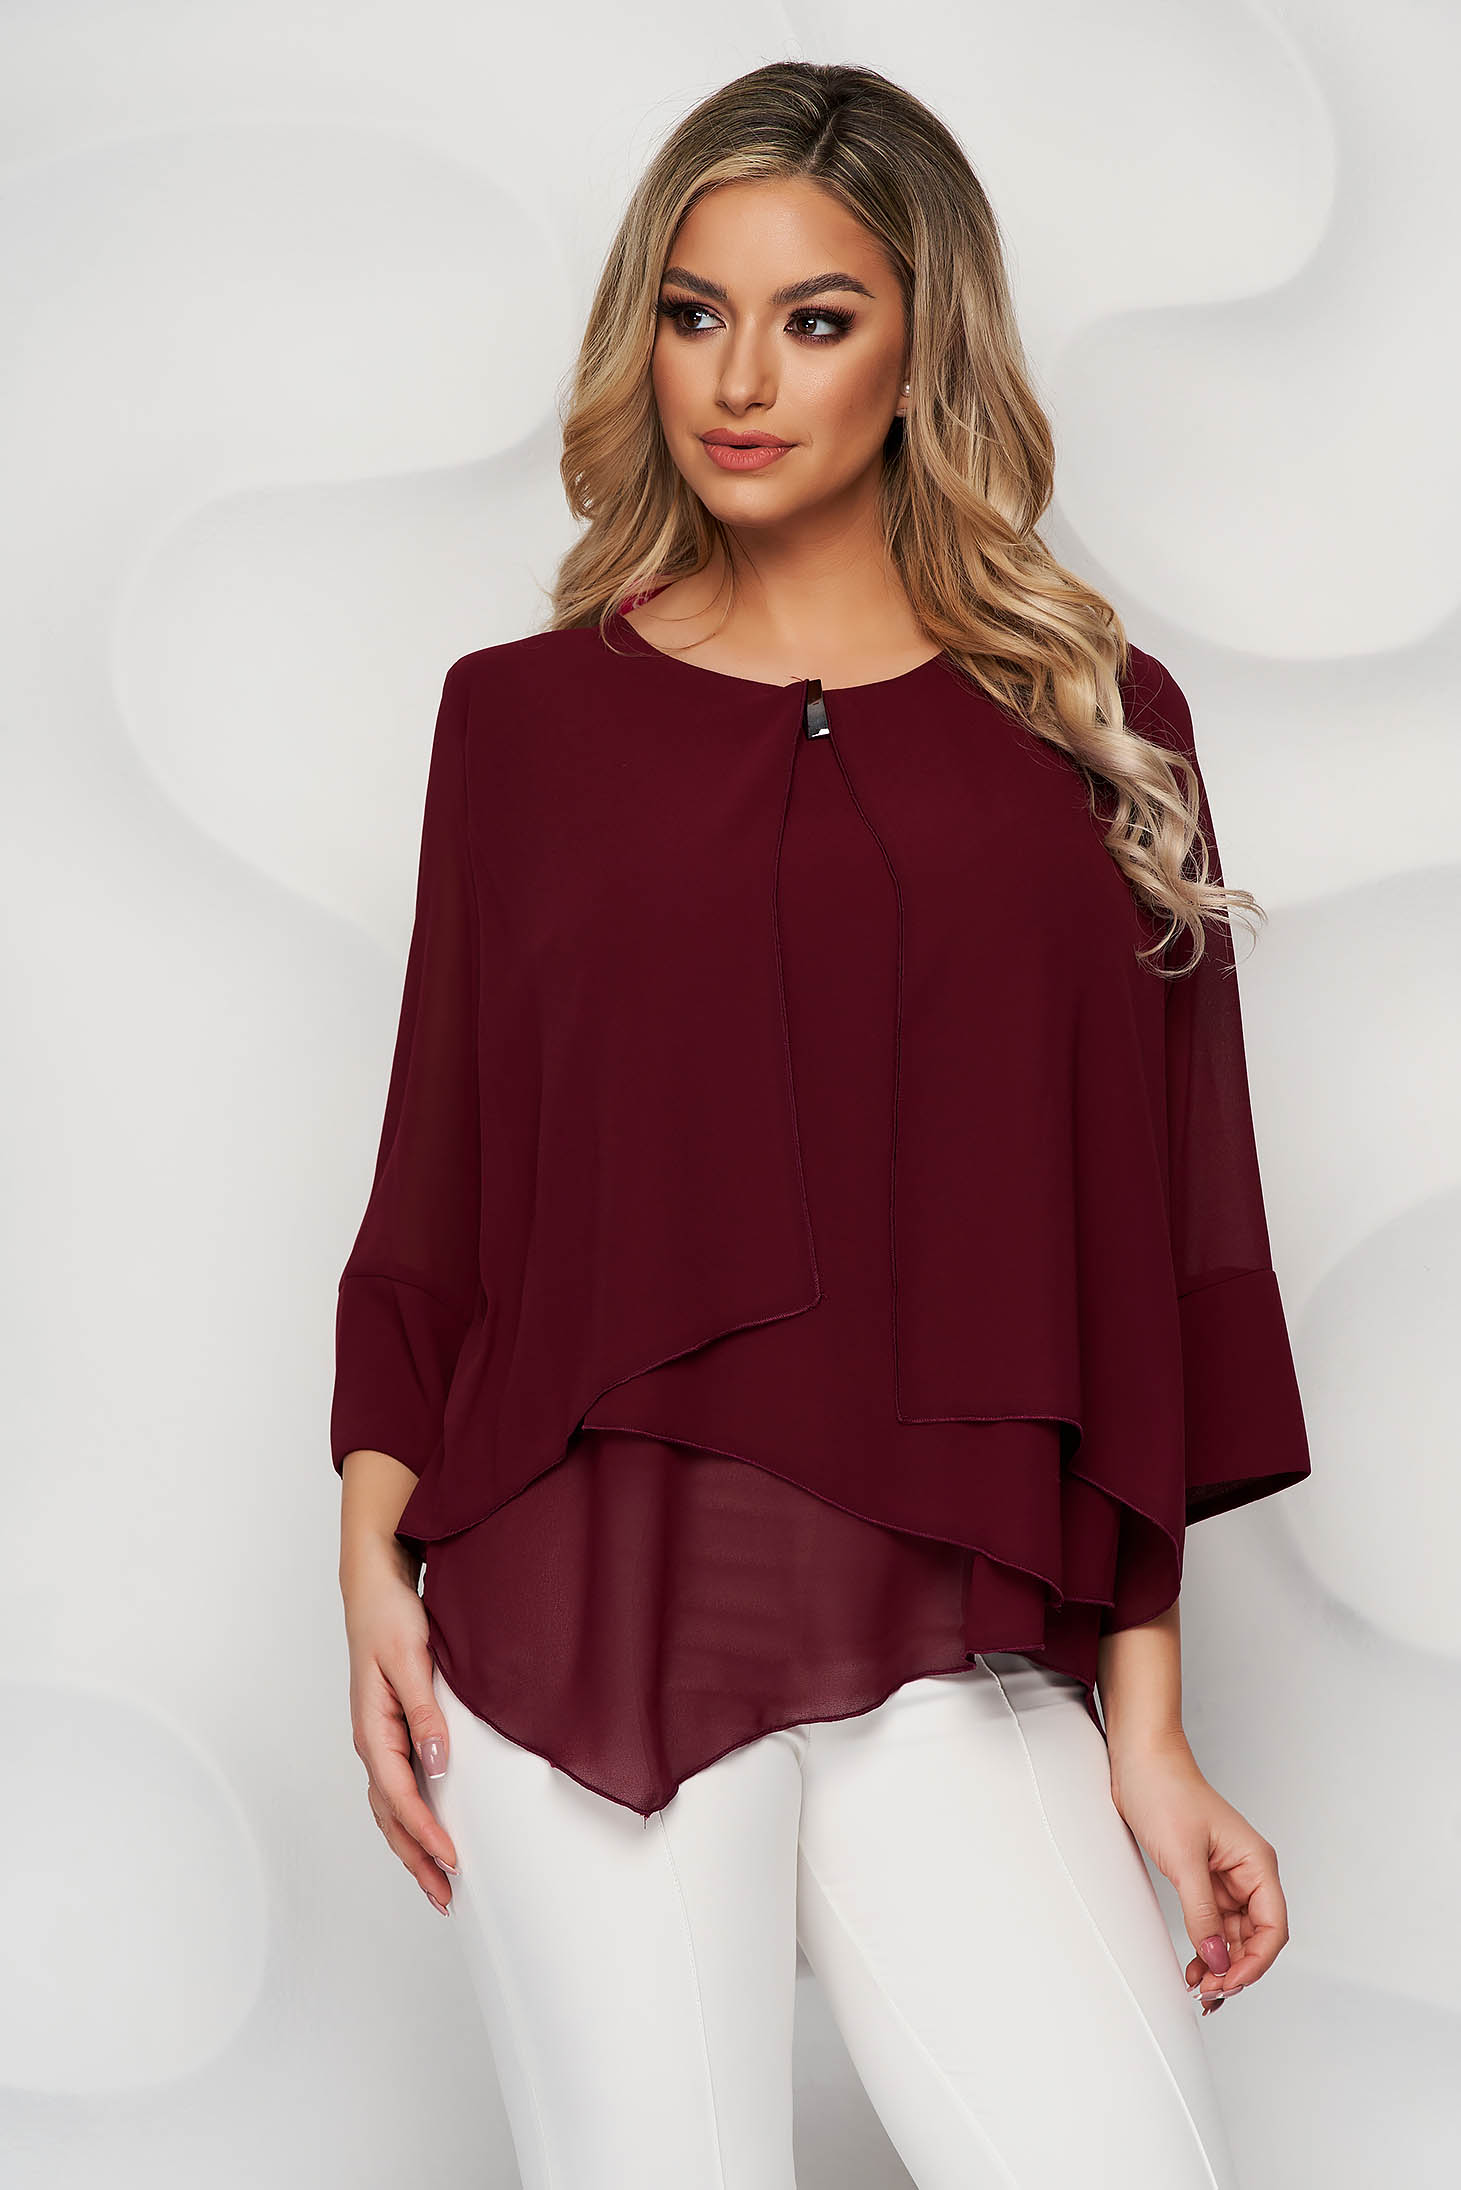 Burgundy office asymmetrical loose fit women`s blouse short cut from veil fabric with metal accessories